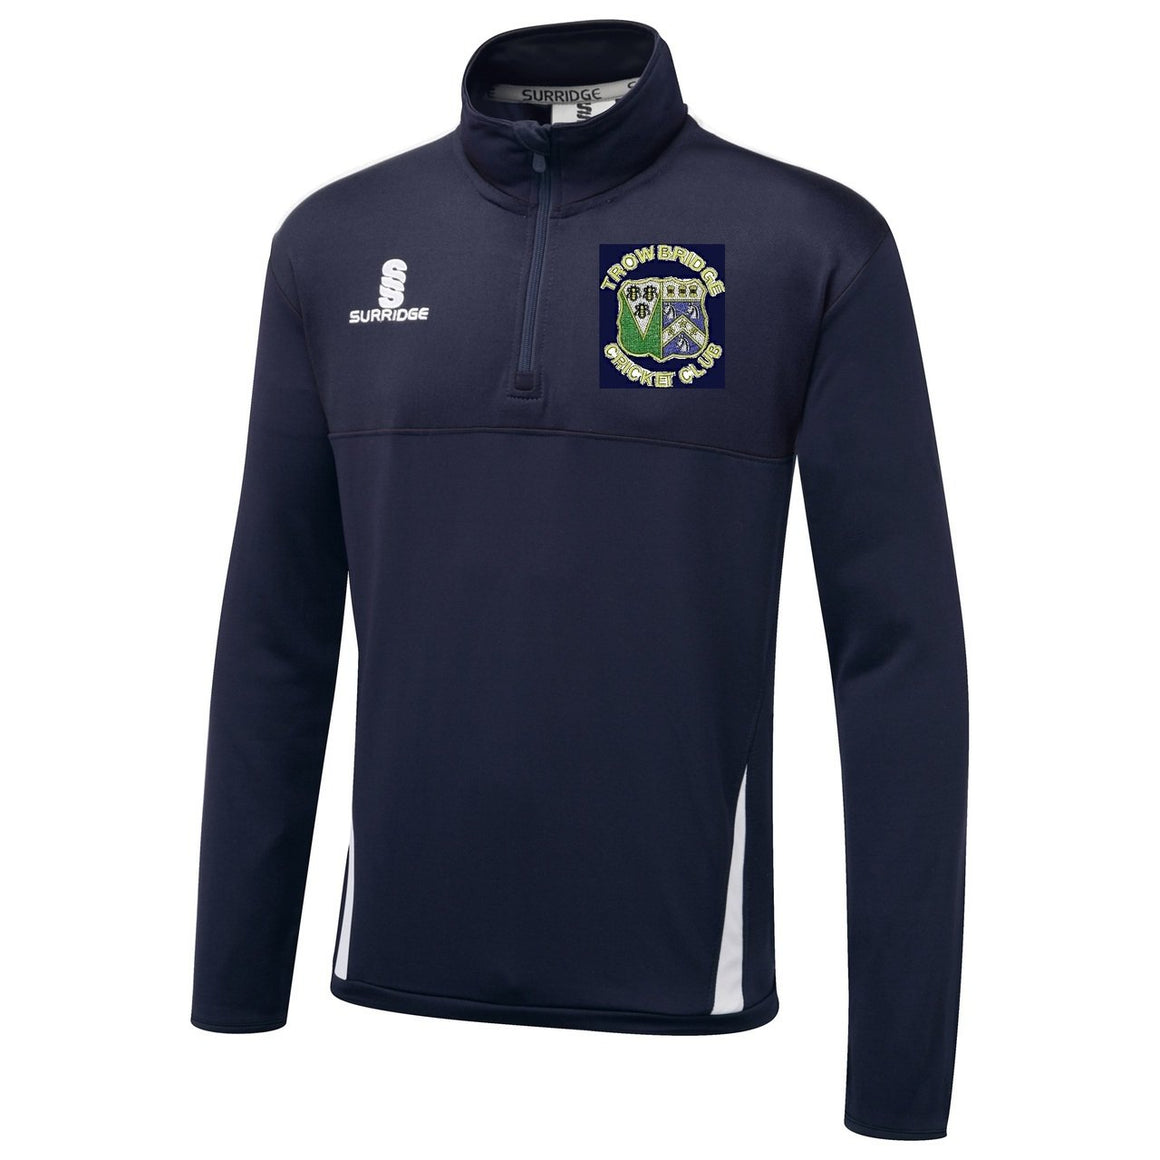 Trowbridge Track Top